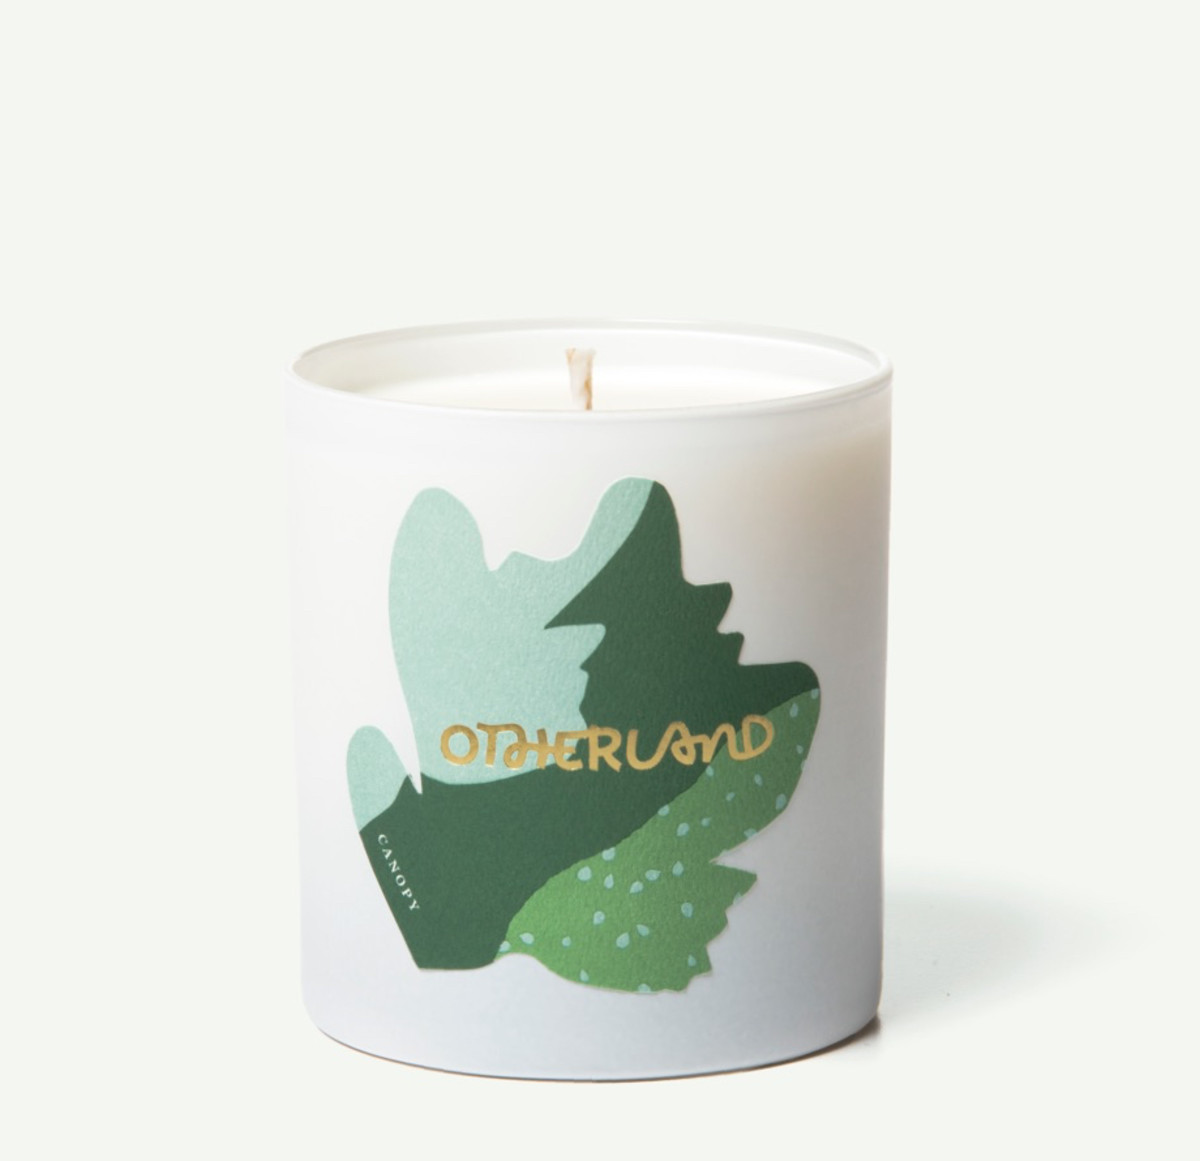 Otherland Canopy candle, $36, available here.